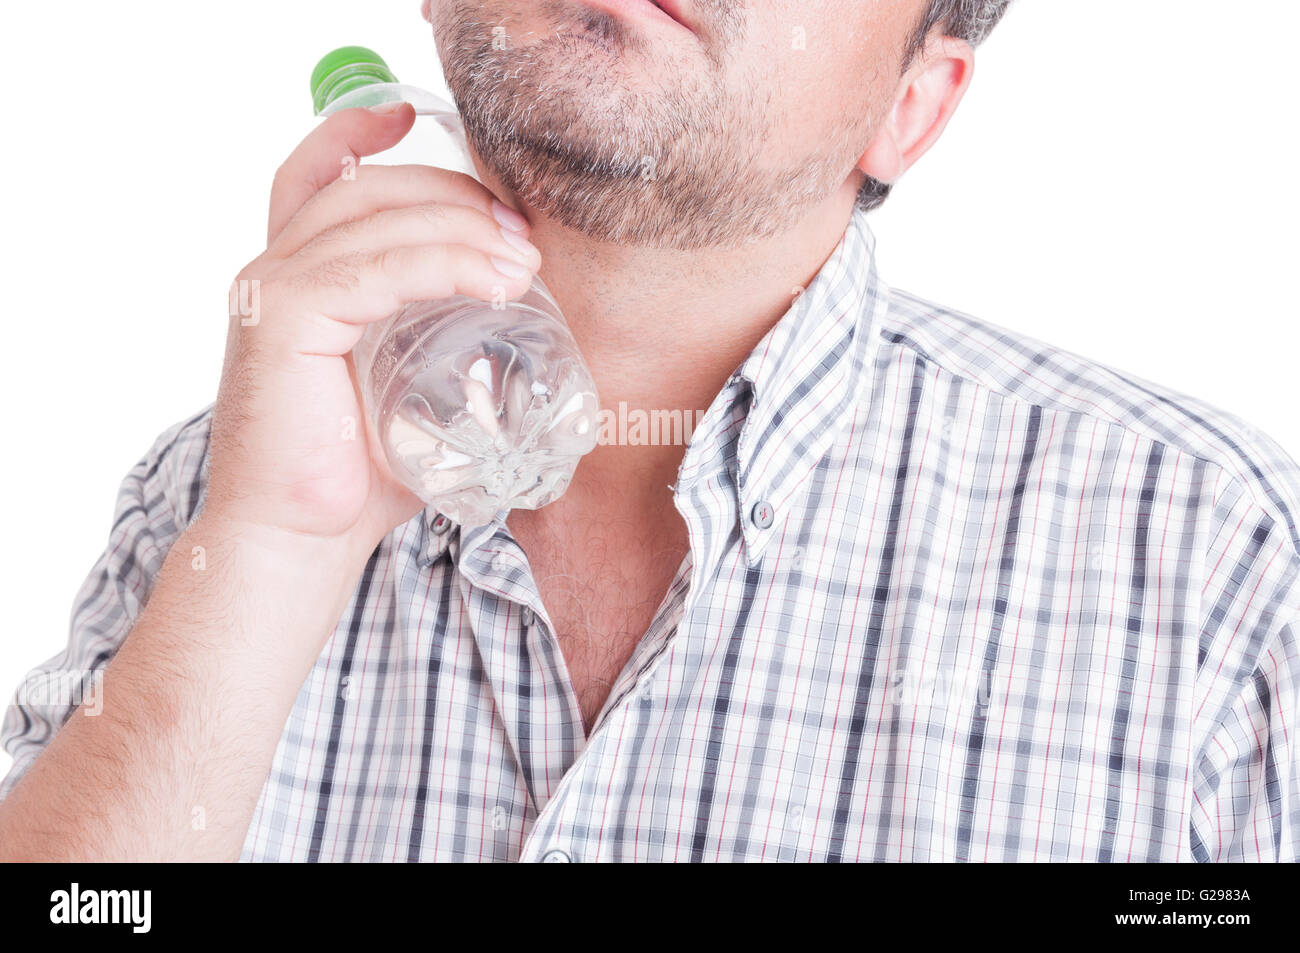 Summer heat or heatwave concept with man holding a bottle of cold water isolated on white - Stock Image